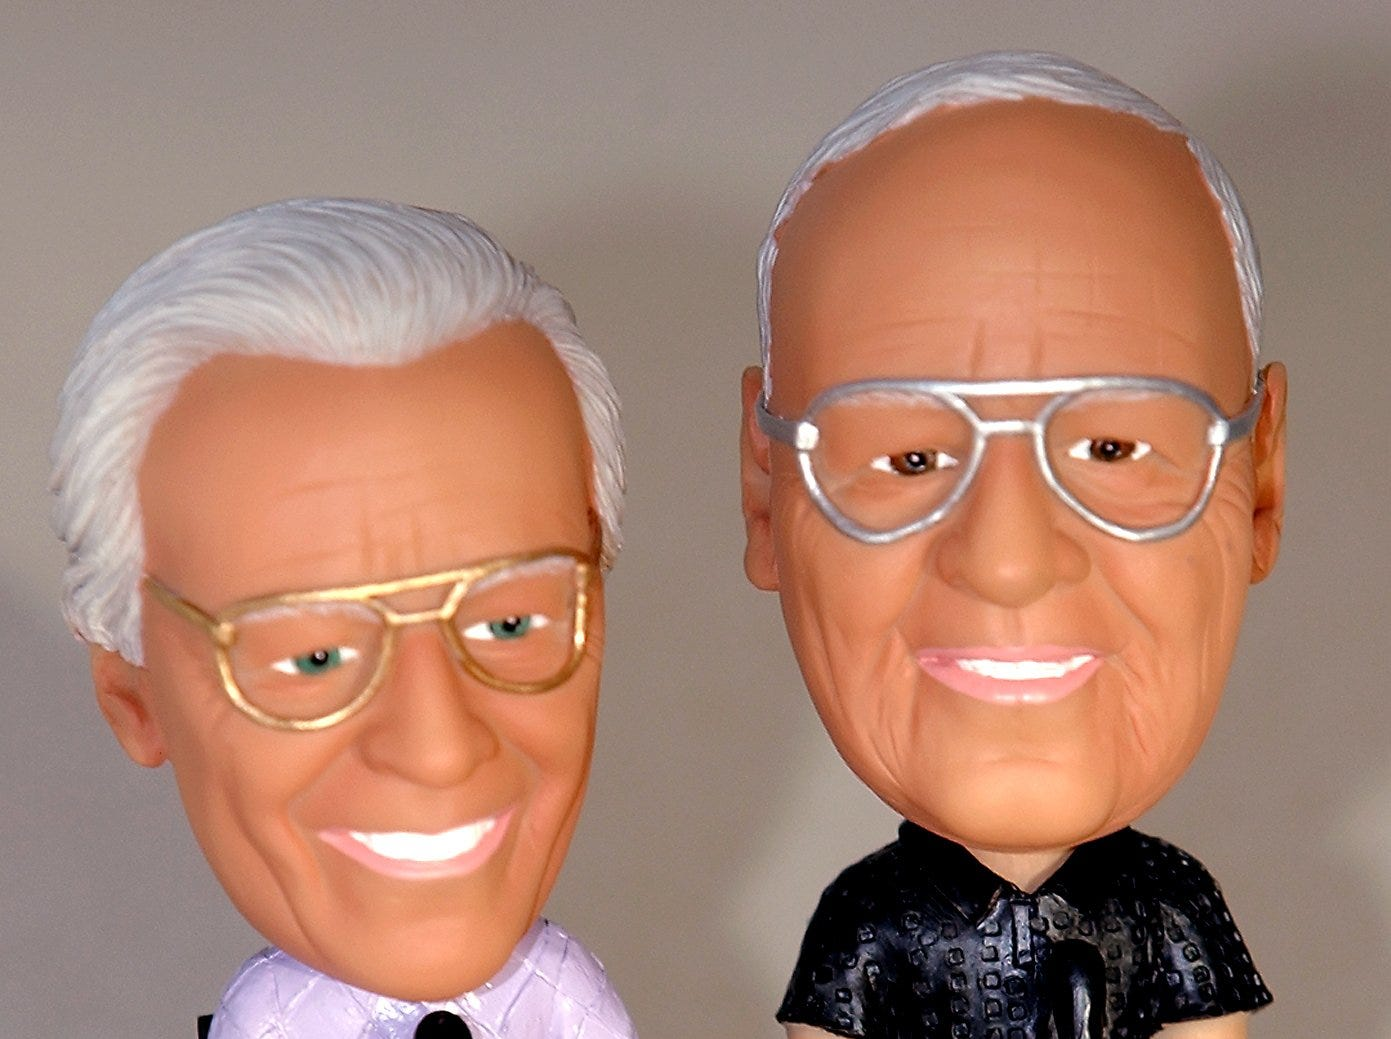 2002.0108.10.2--MARTY ANND JOE BOBBLE--Famed Reds broadcaster Joe Nuxhall and partner Marty Brennaman are seen in a new bobble head at the Reds offcies Wednesday, January 8, 2002. Photo by Craig Ruttle/Cincinnati Enquirer